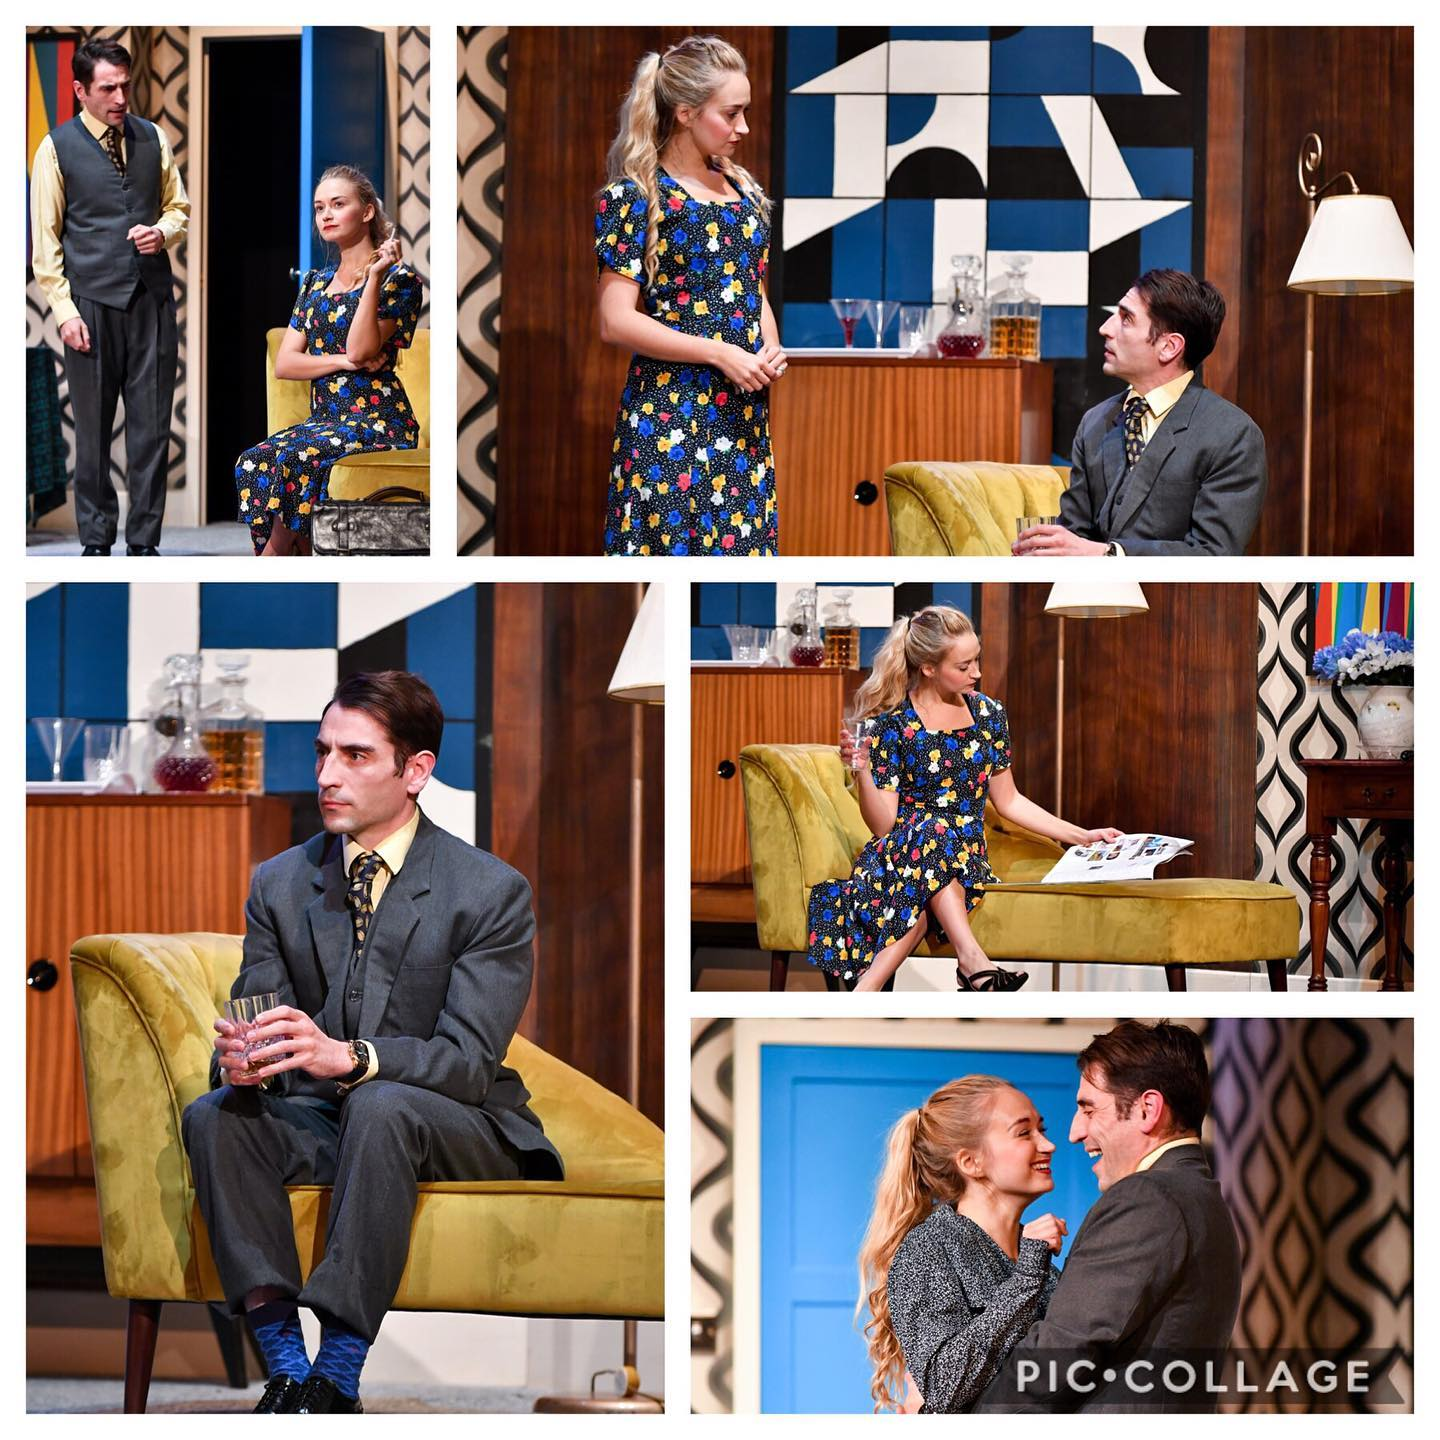 Photograph montage of images from 'The Lover' by Harold Pinter (2019)